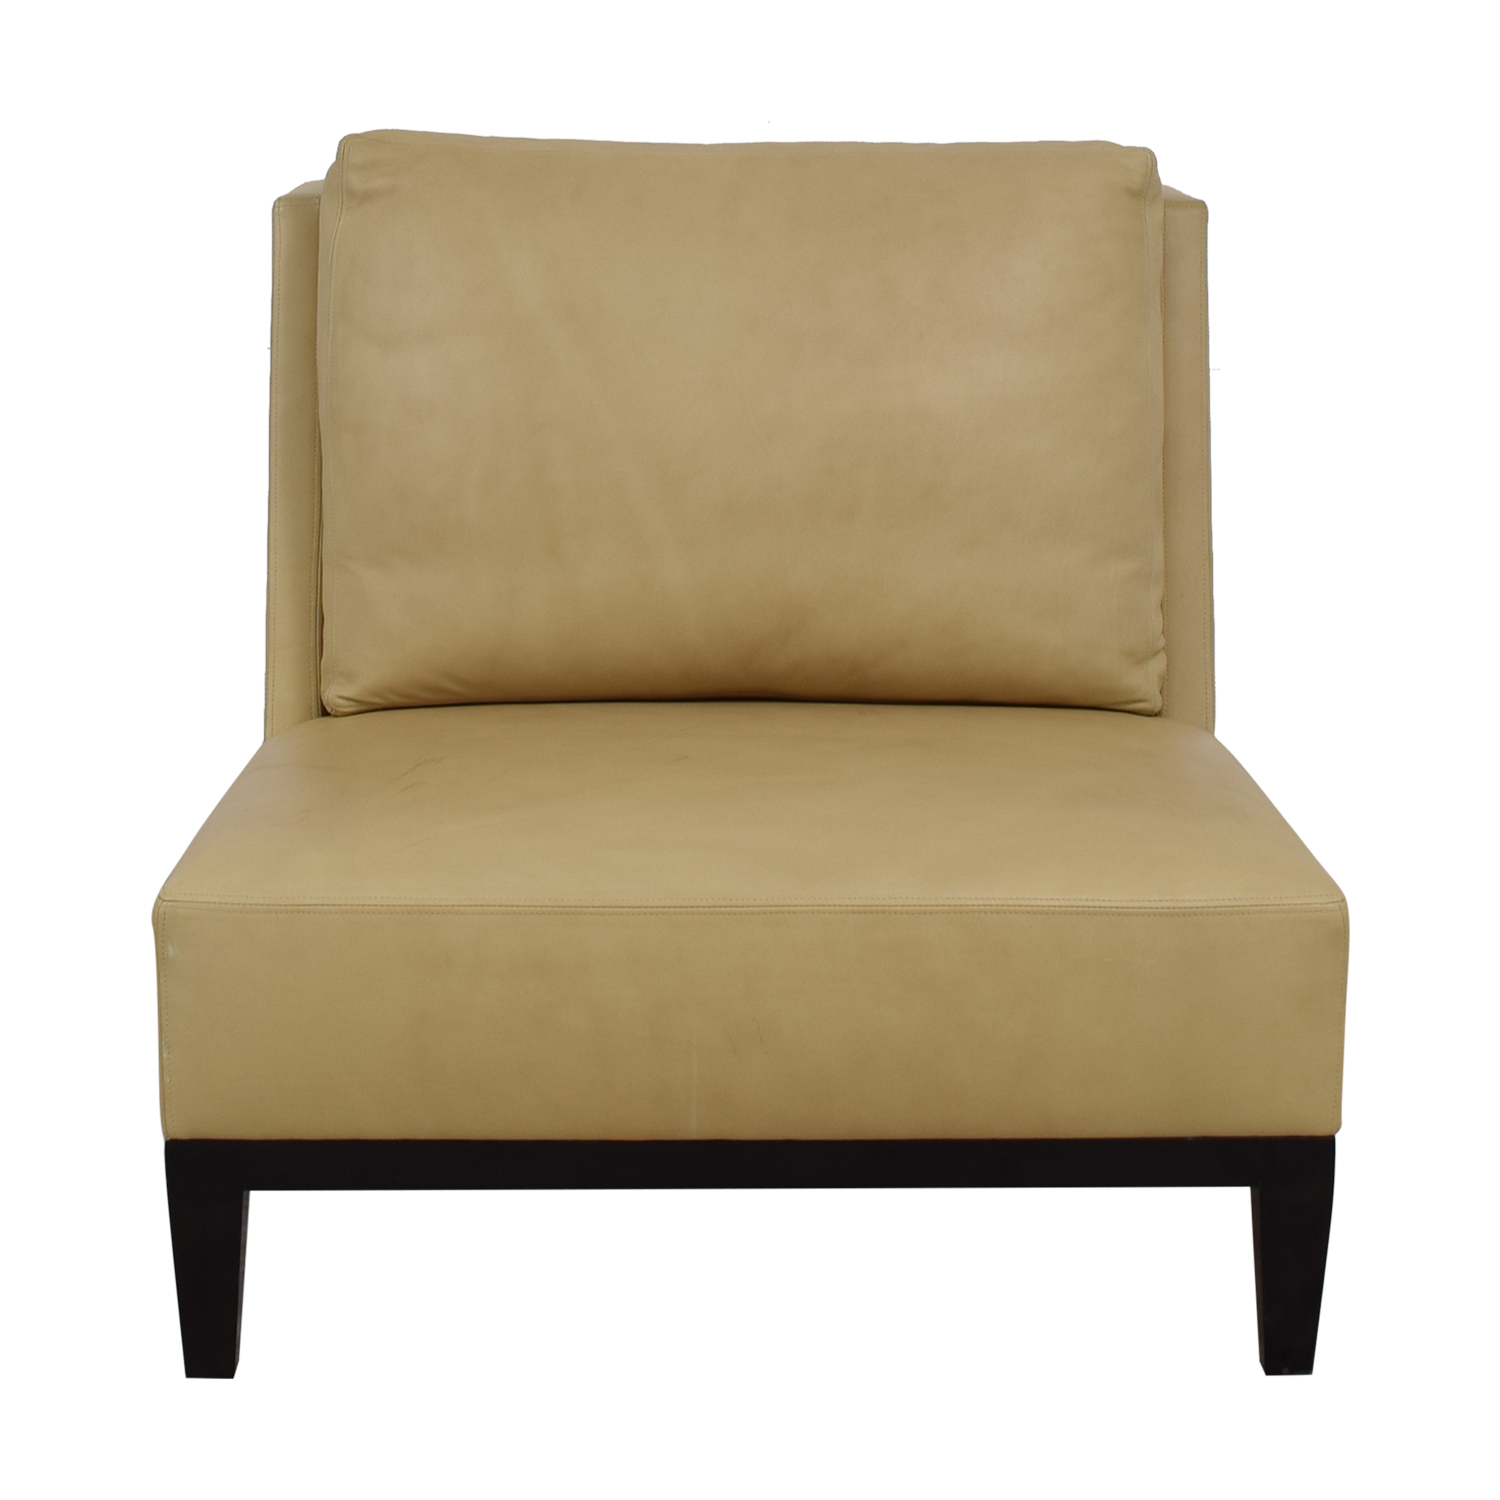 buy Furniture Masters Tan Accent Chair Furniture Masters Accent Chairs